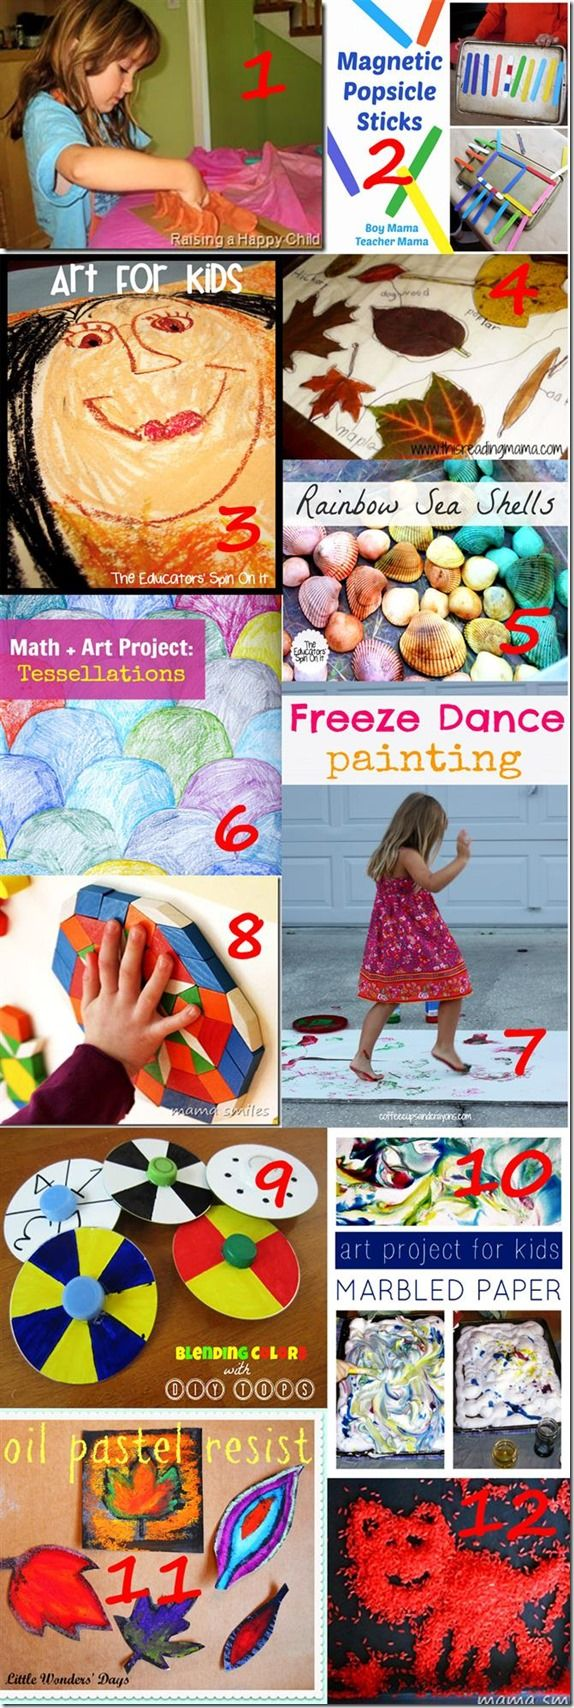 390 best images about preschool ideas on pinterest class for Arts and crafts for school age